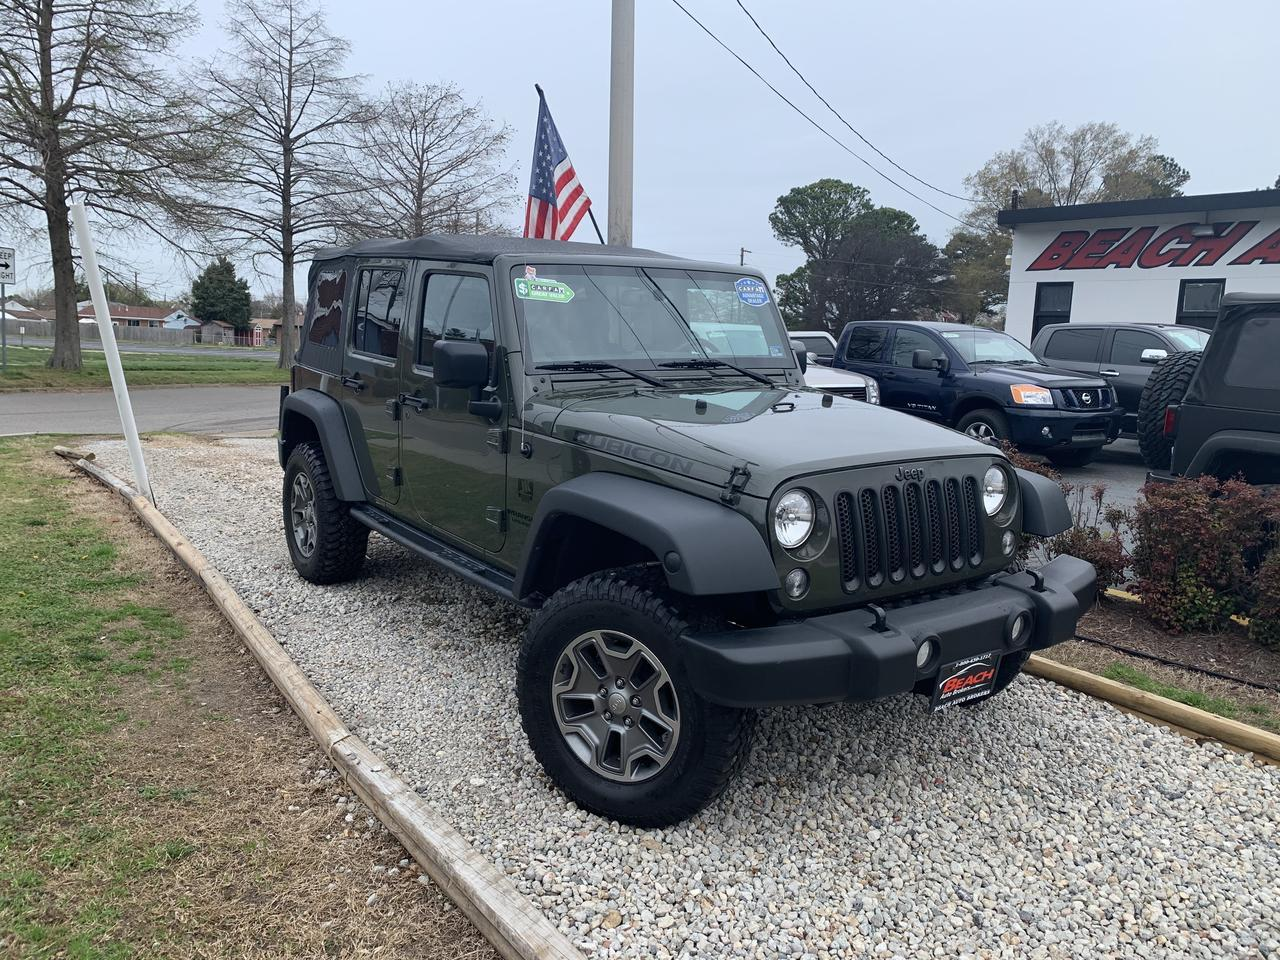 2015 JEEP WRANGLER UNLIMITED RUBICON 4X4, WARRANTY, NAV, SOFT TOP, UCONNECT, RUNNING BOARDS, 1 OWNER!